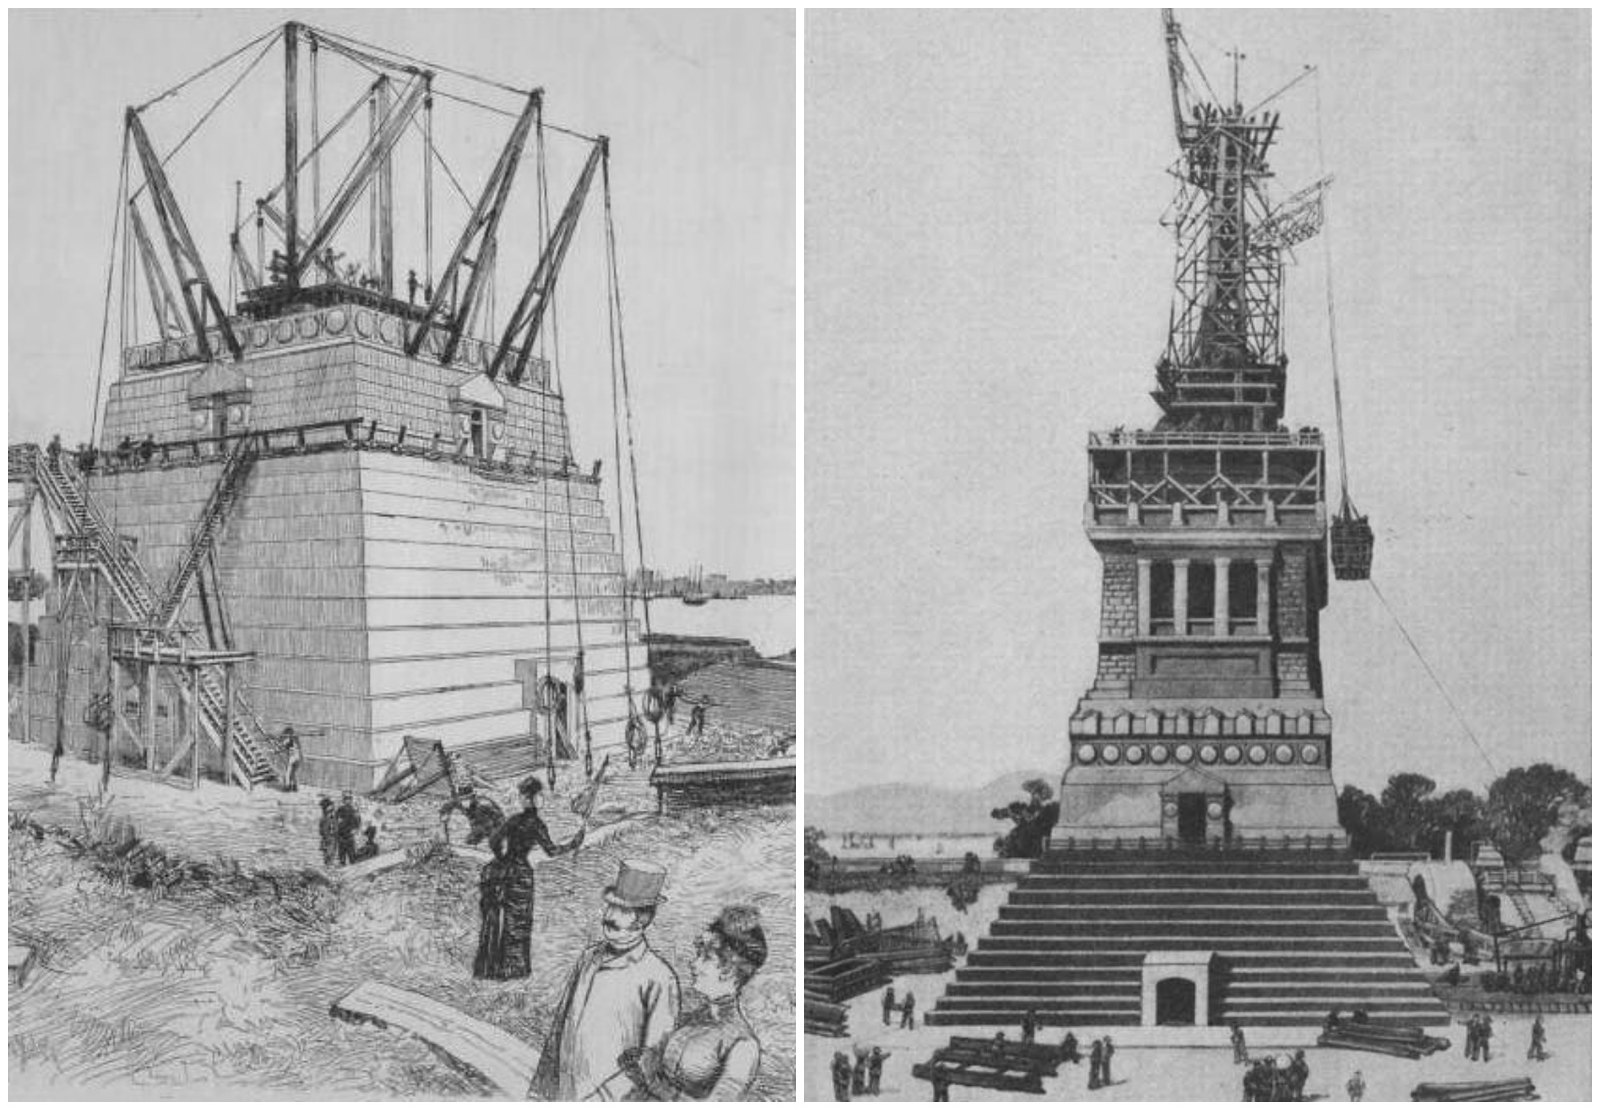 The American Committee charged with building the pedestal for the Statue of Liberty didn't complete it until May 1886—10 years after the centennial of the Declaration of Independence.